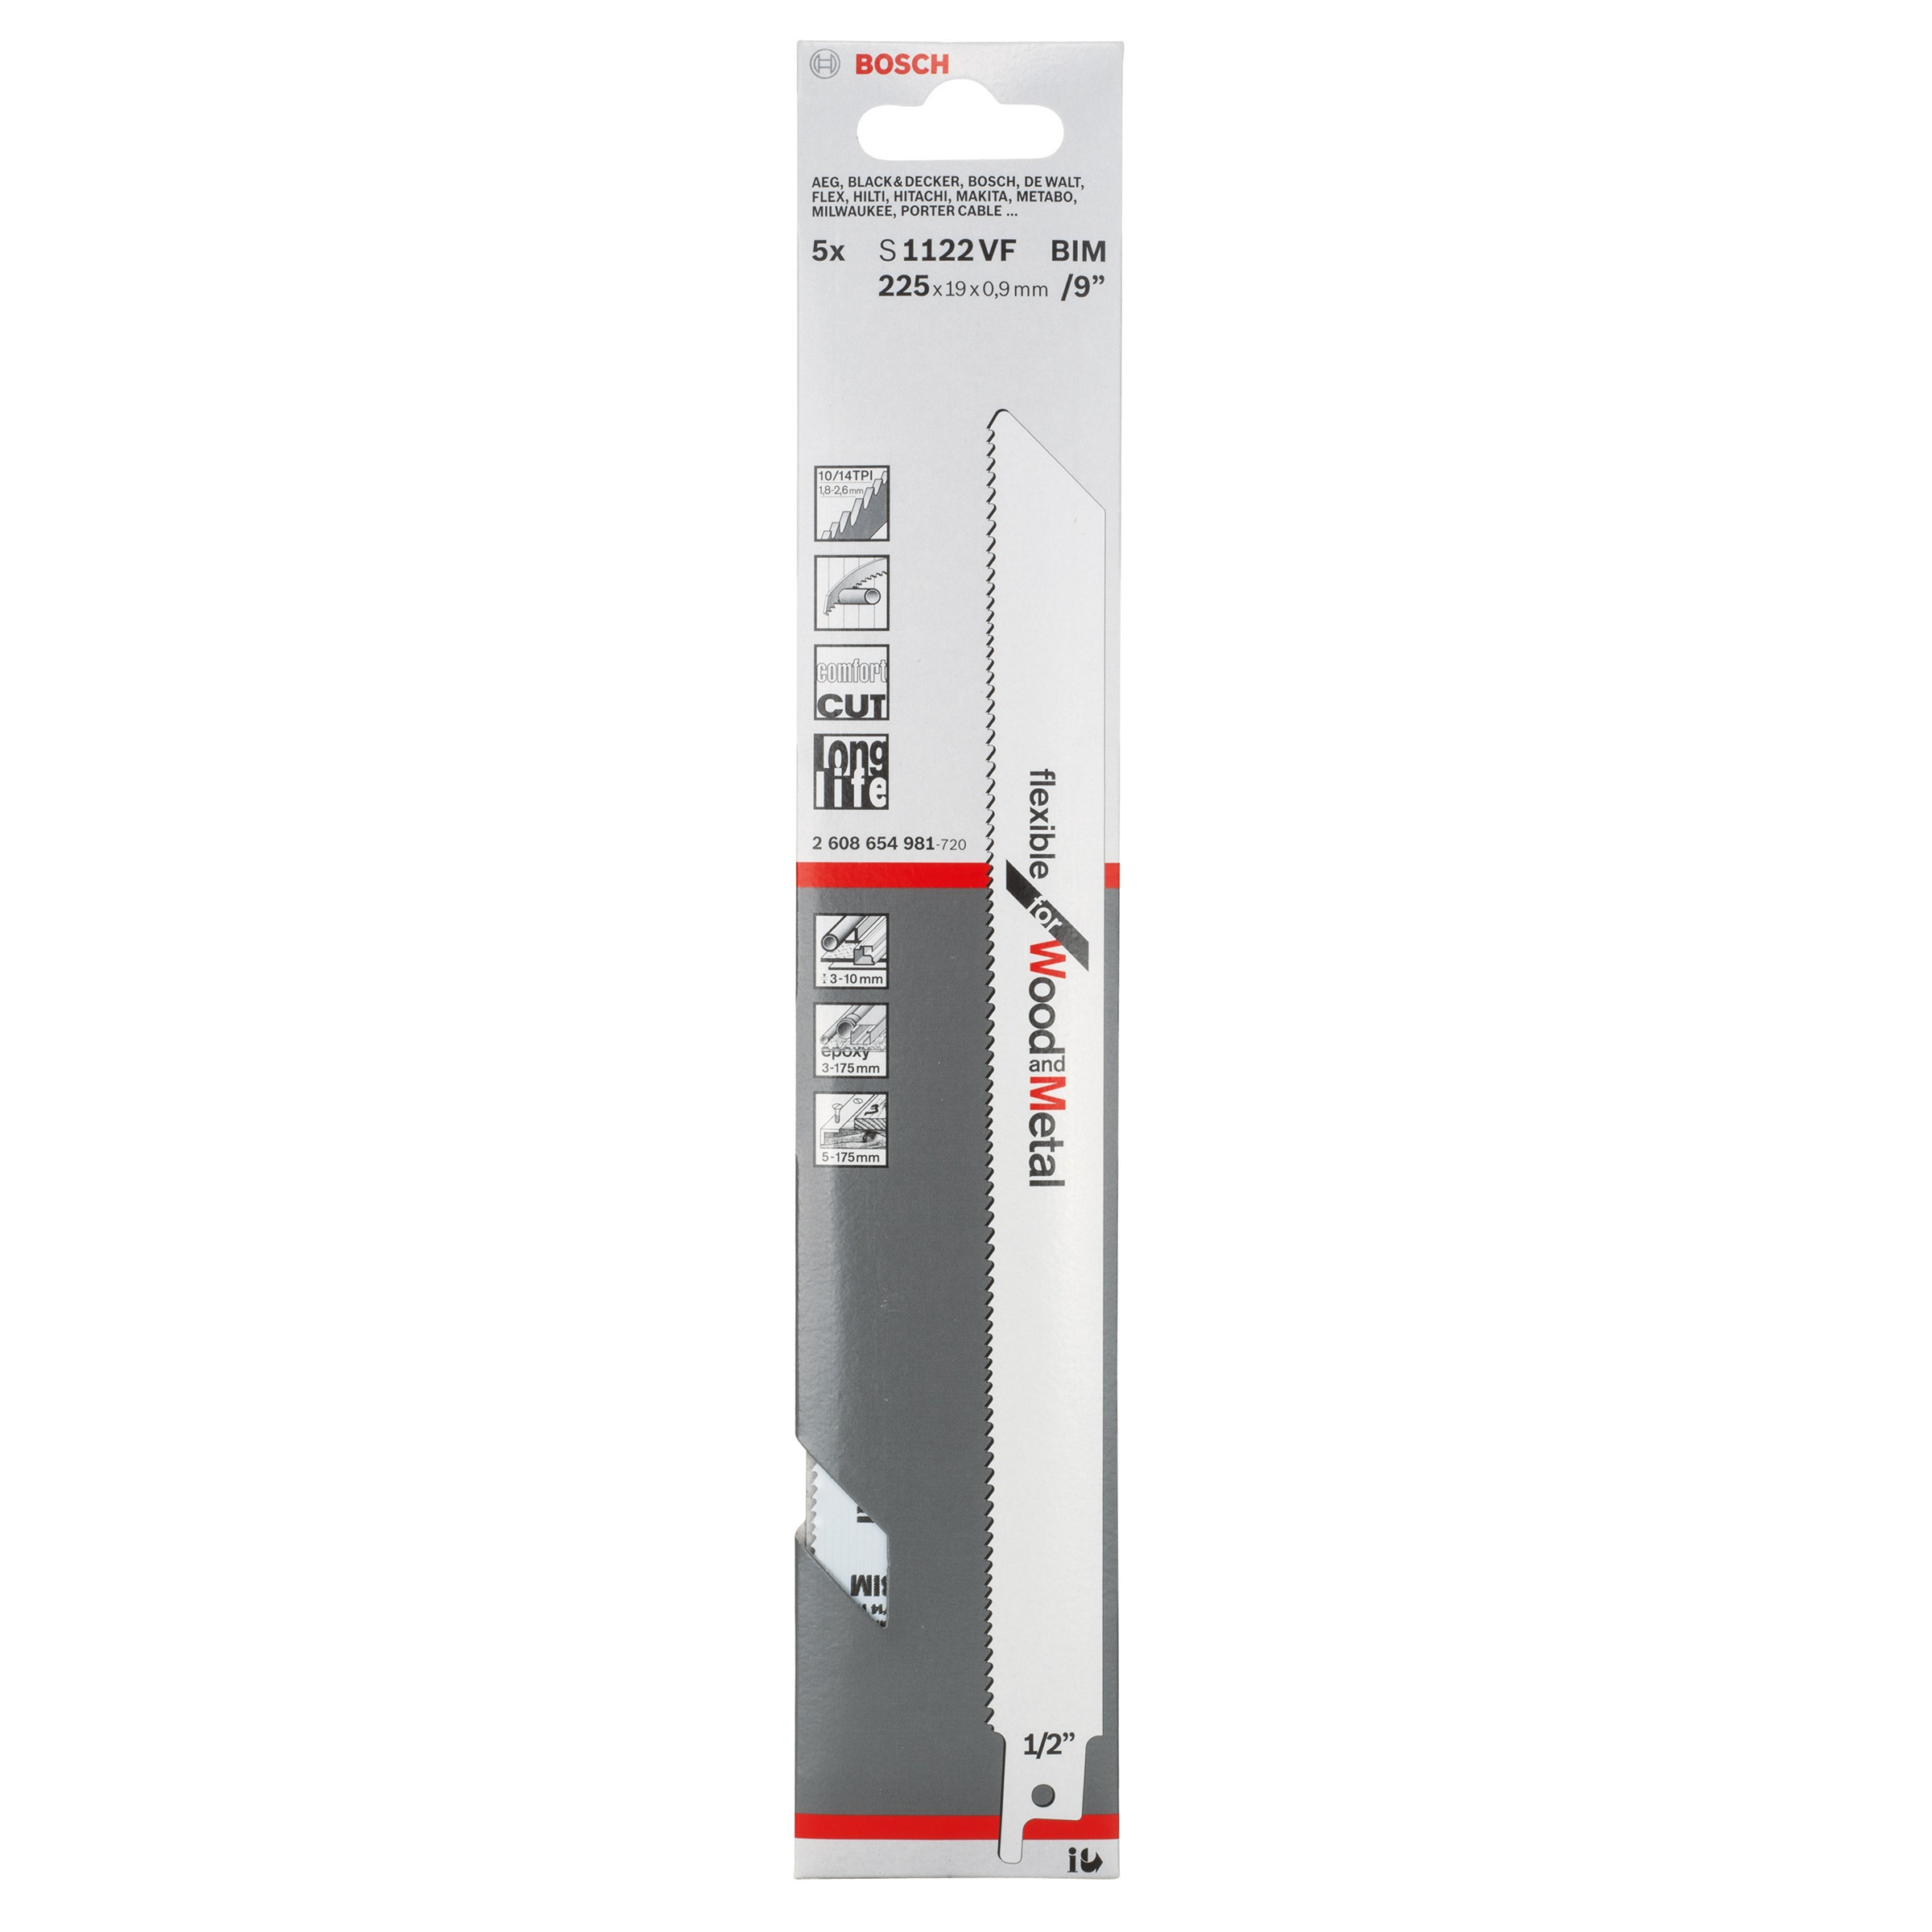 Bosch Reciprocating (Sabre) Saw Blades - S 1122 VF (5 pack)